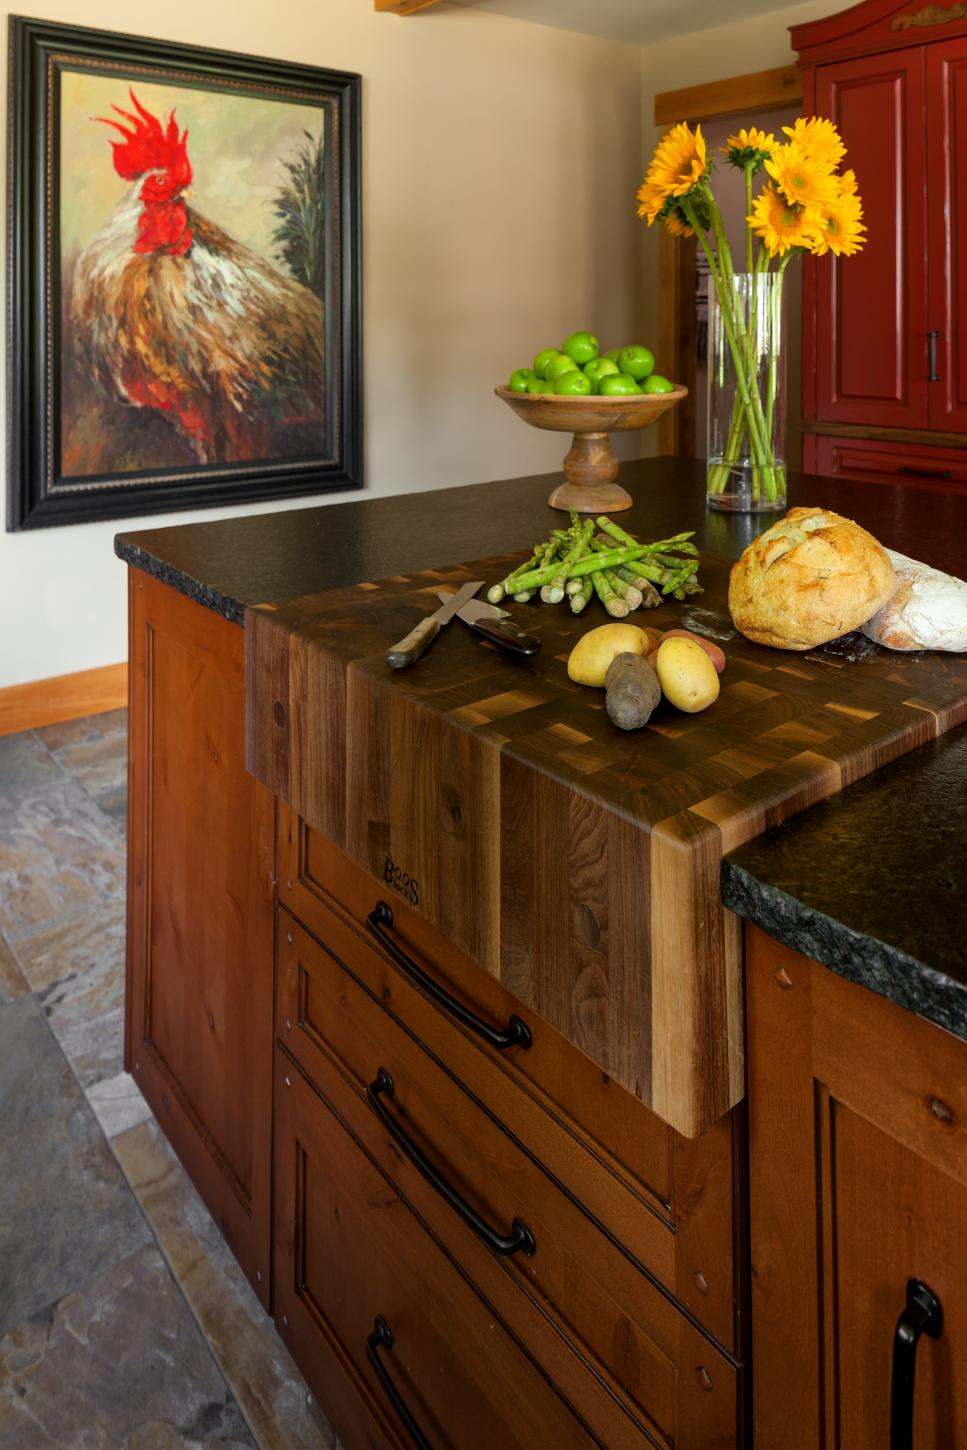 Kitchen Countertop and Rooster Art